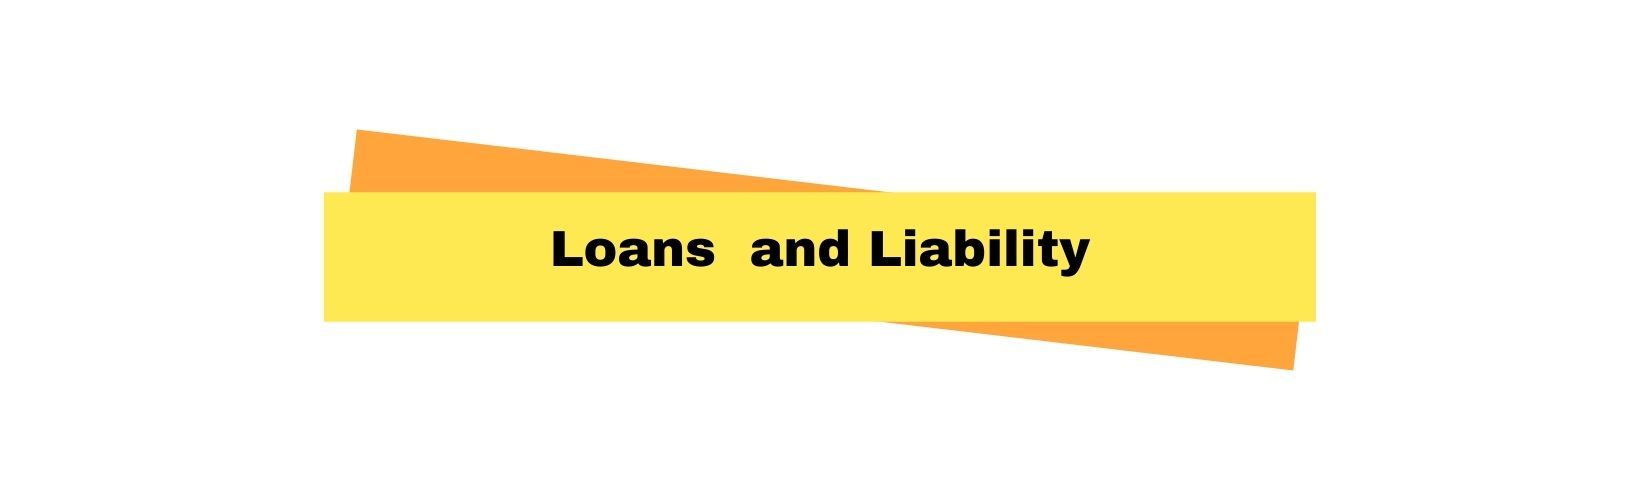 loans and liability